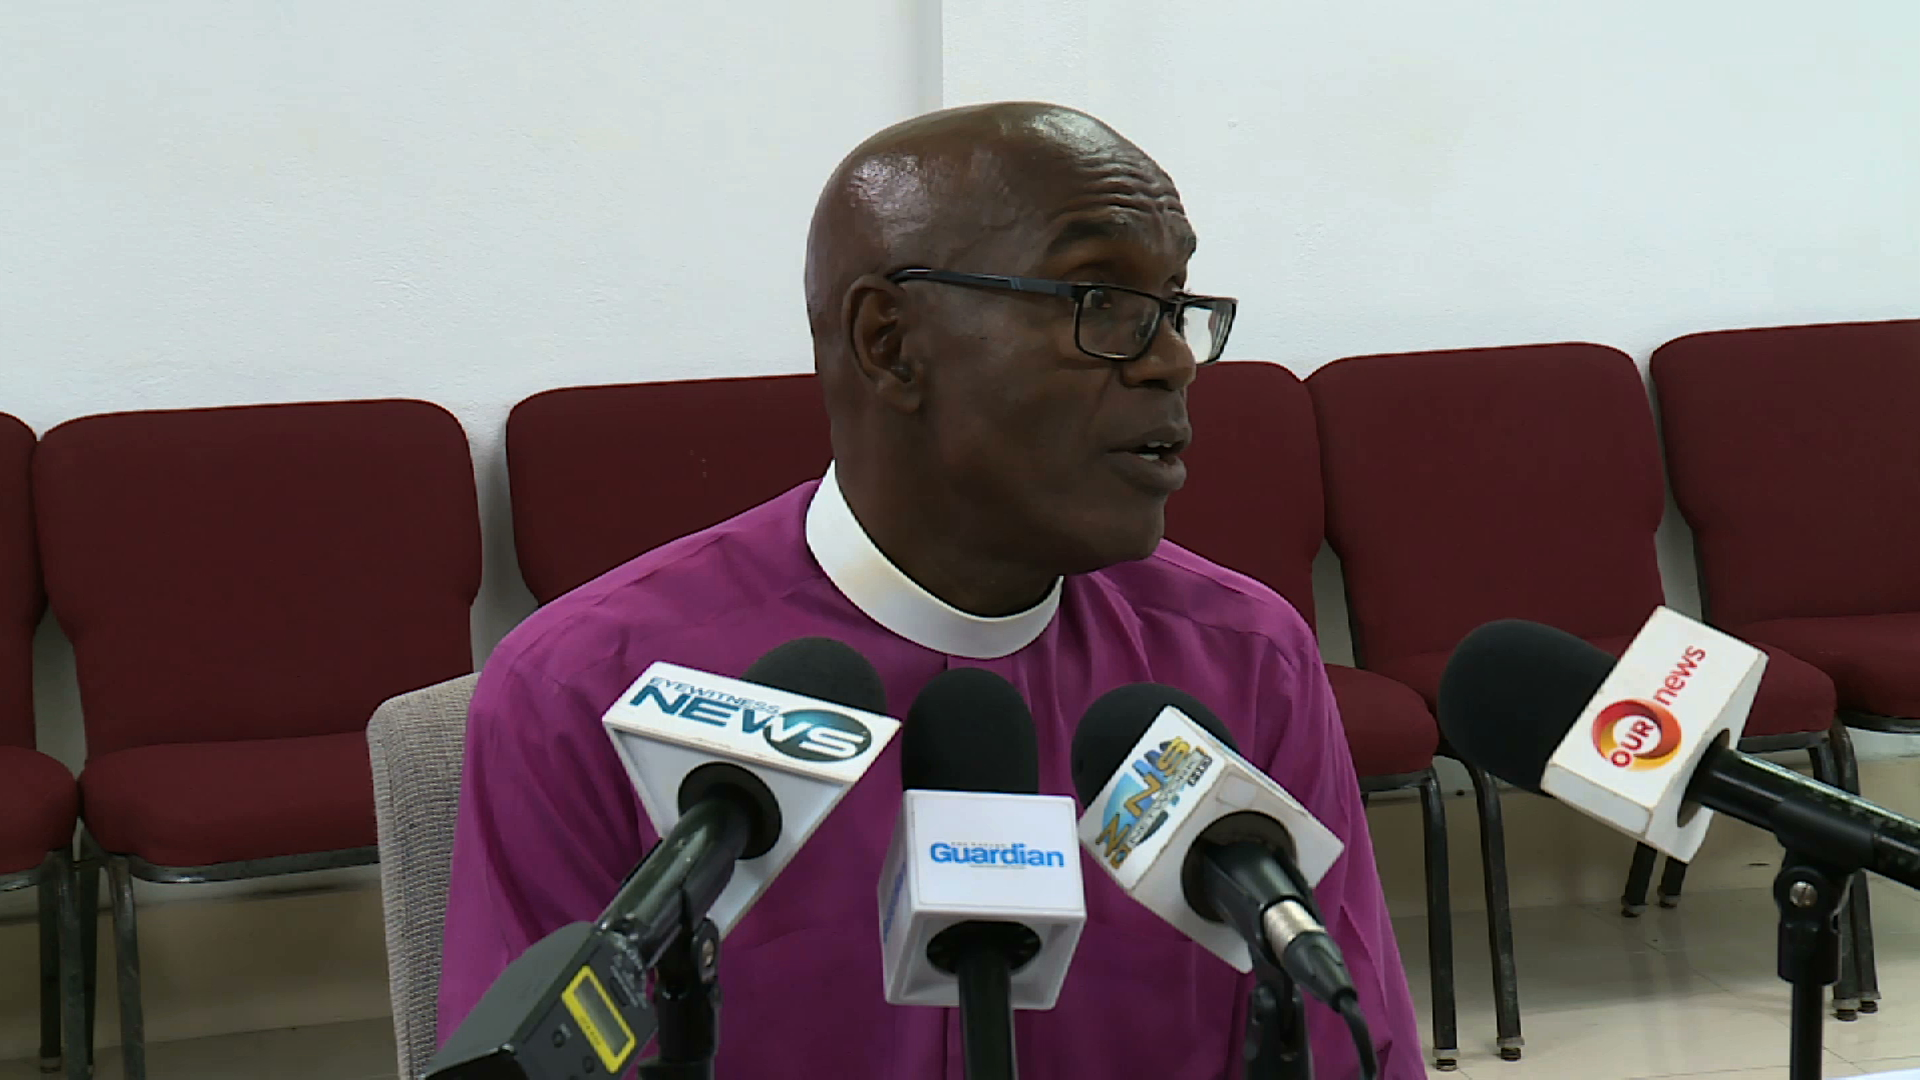 Archdeacon applauds govt.'s decision to revisit gender equality debate